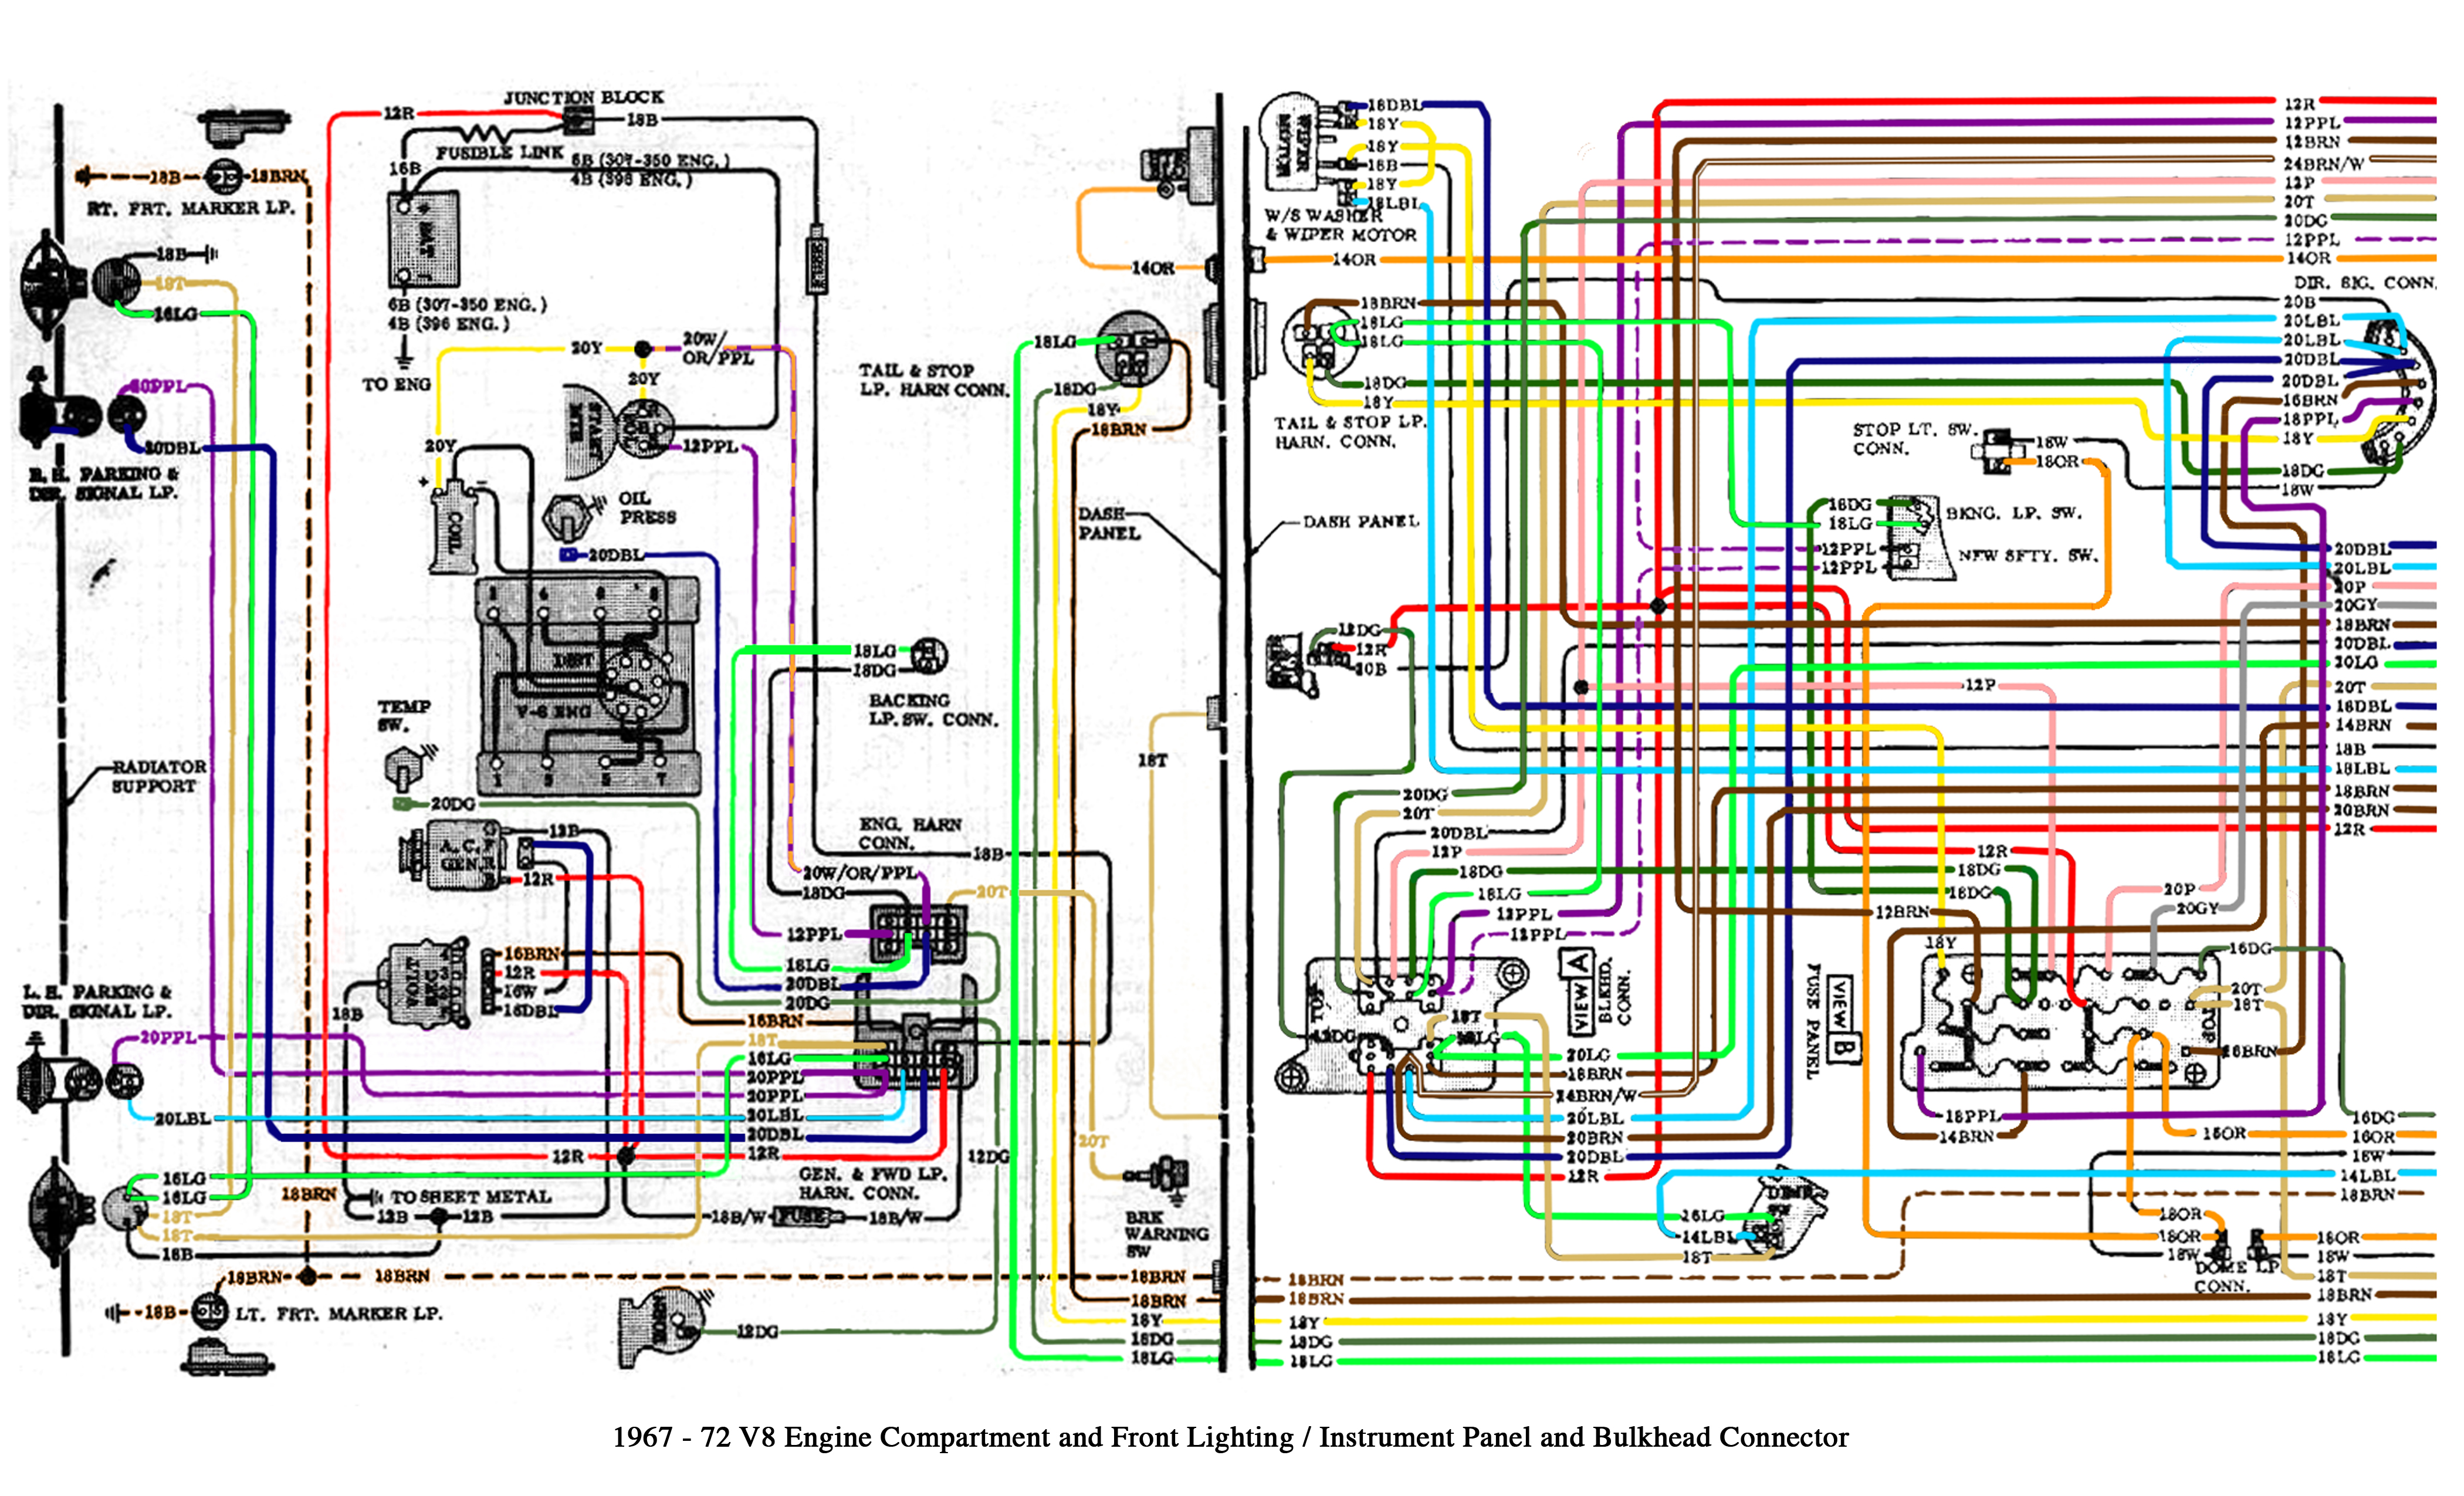 3397411656_03c2a8064d_o color wiring diagram finished the 1947 present chevrolet & gmc 1967 chevy ii wiring diagram at honlapkeszites.co